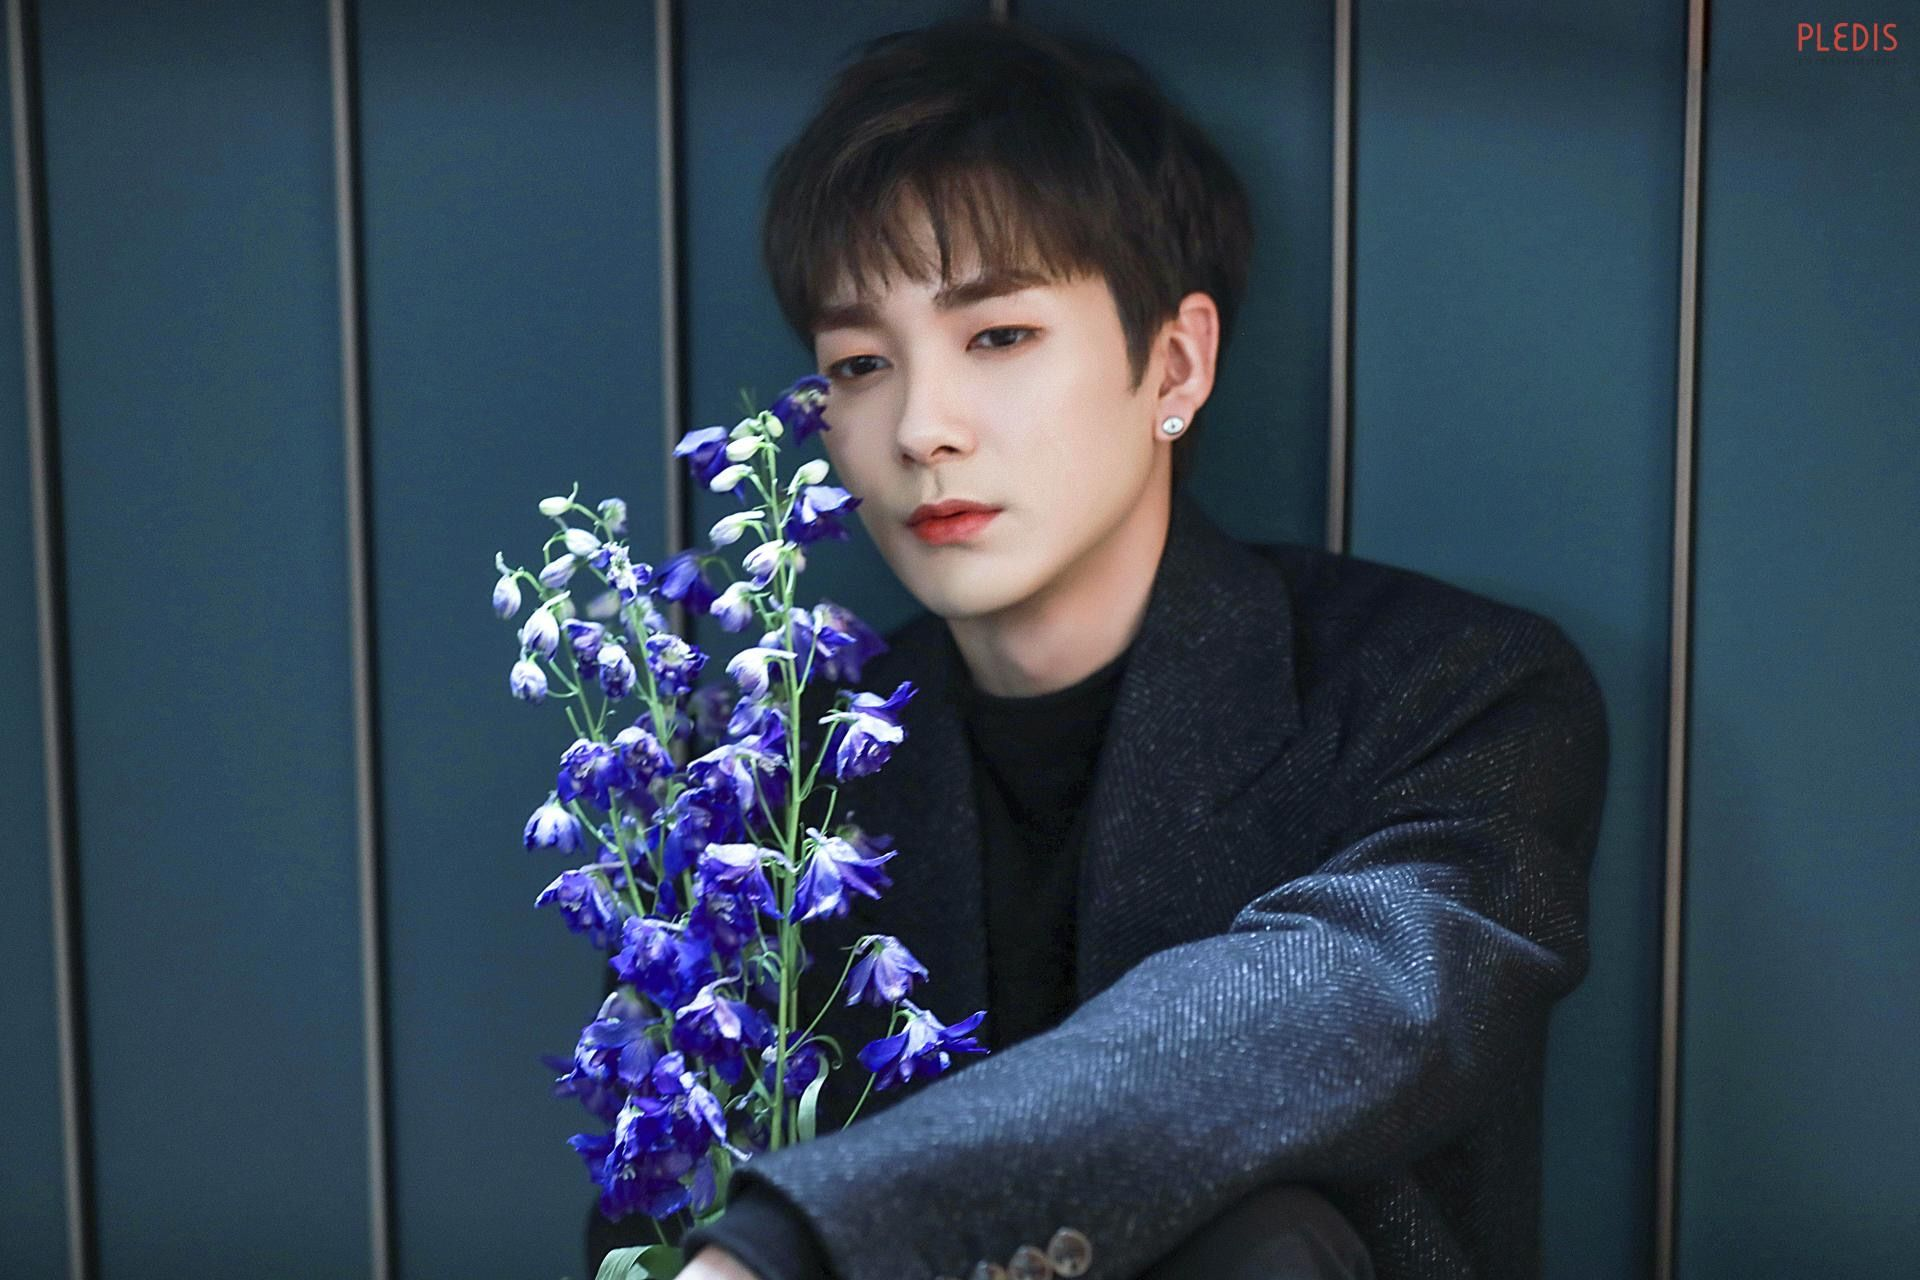 Aron stops his activities for health reasons